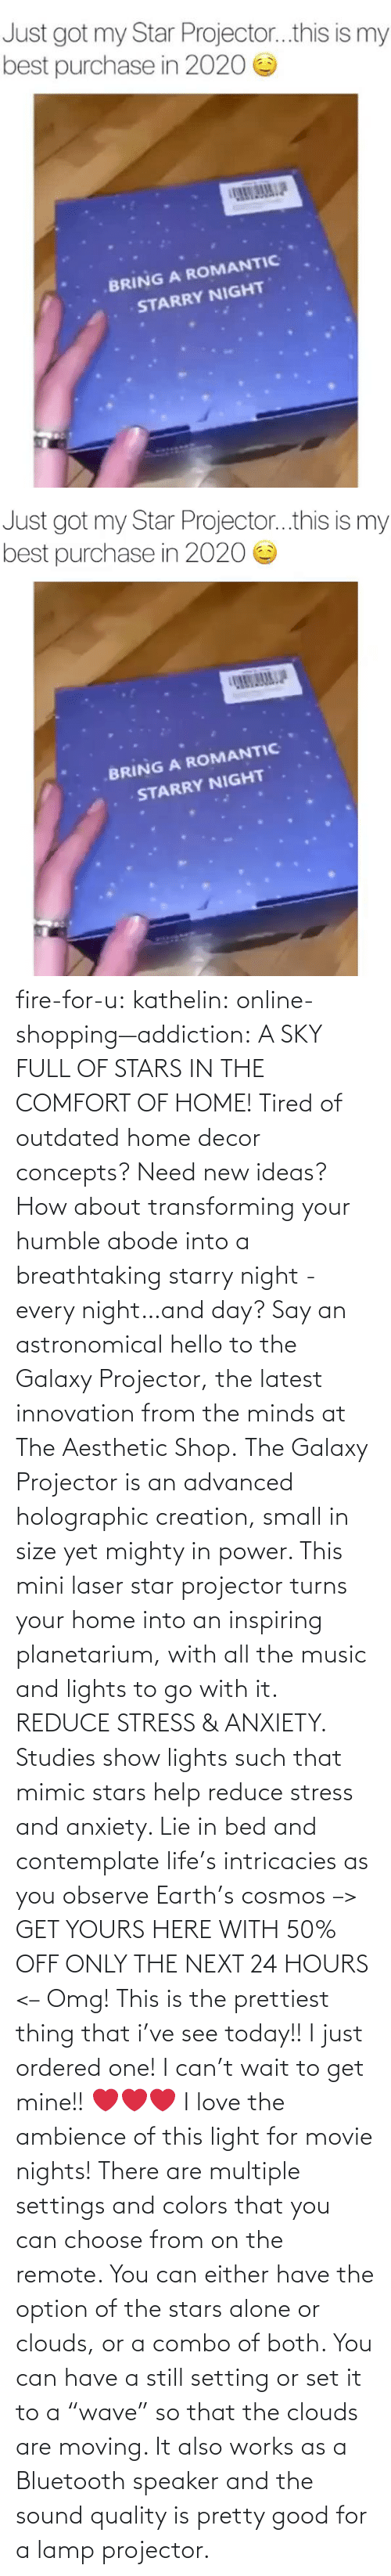 "clouds: fire-for-u:  kathelin: online-shopping—addiction:  A SKY FULL OF STARS IN THE COMFORT OF HOME! Tired of outdated home decor concepts? Need new ideas? How about transforming your humble abode into a breathtaking starry night - every night…and day? Say an astronomical hello to the Galaxy Projector, the latest innovation from the minds at The Aesthetic Shop. The Galaxy Projector is an advanced holographic creation, small in size yet mighty in power. This mini laser star projector turns your home into an inspiring planetarium, with all the music and lights to go with it. REDUCE STRESS & ANXIETY. Studies show lights such that mimic stars help reduce stress and anxiety. Lie in bed and contemplate life's intricacies as you observe Earth's cosmos  –> GET YOURS HERE WITH 50% OFF ONLY THE NEXT 24 HOURS <–   Omg! This is the prettiest thing that i've see today!! I just ordered one! I can't wait to get mine!! ❤️️❤️️❤️️  I love the ambience of this light for movie nights! There are multiple settings and colors that you can choose from on the remote. You can either have the option of the stars alone or clouds, or a combo of both. You can have a still setting or set it to a ""wave"" so that the clouds are moving. It also works as a Bluetooth speaker and the sound quality is pretty good for a lamp projector."